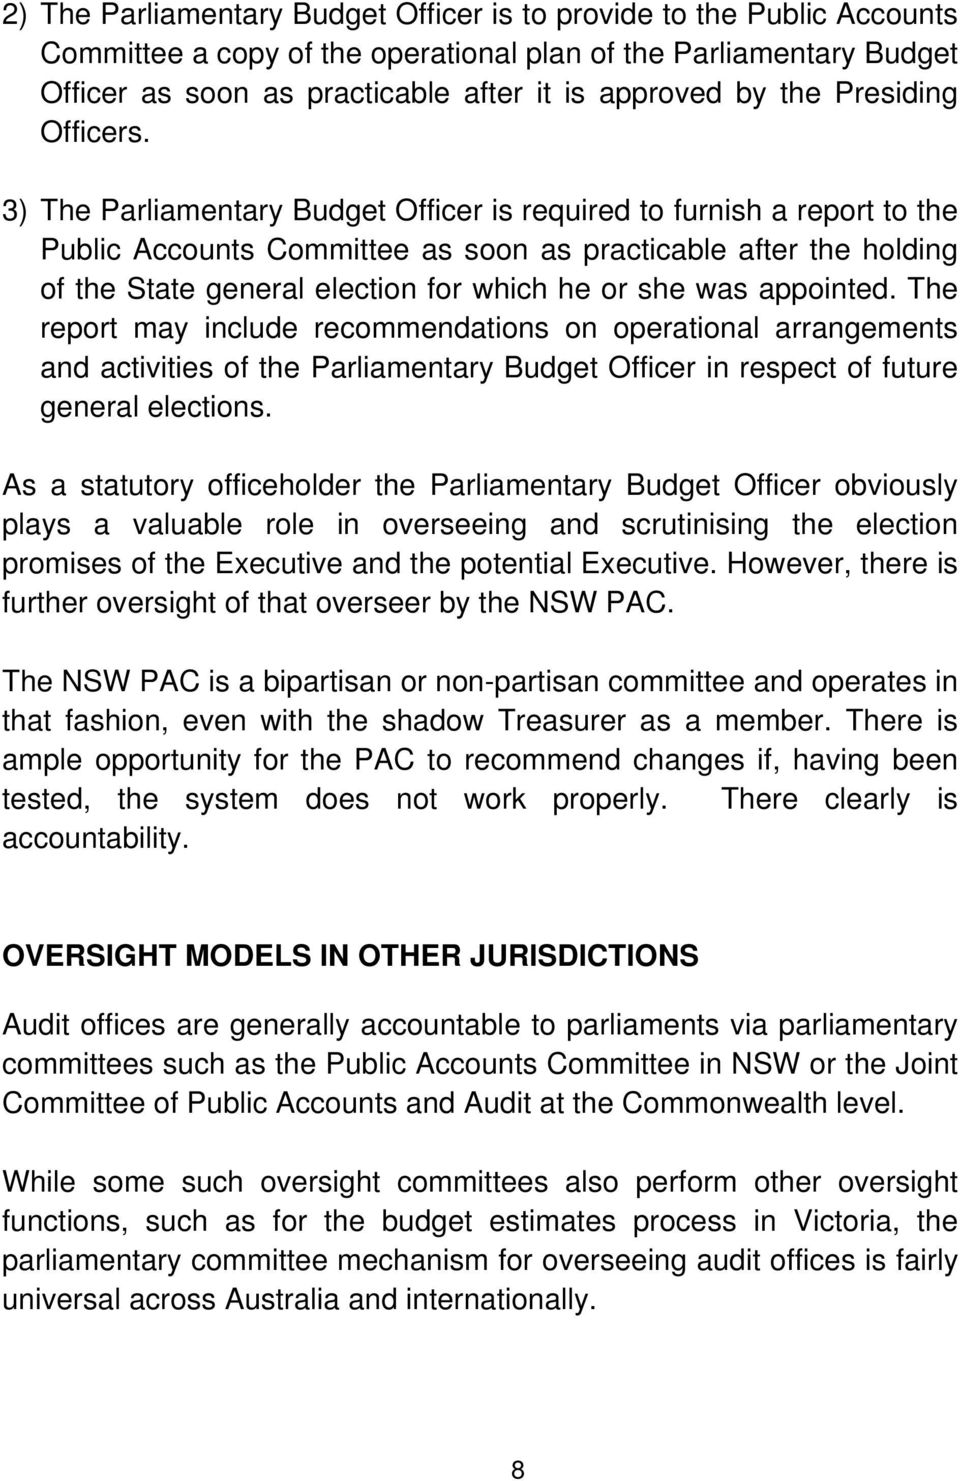 3) The Parliamentary Budget Officer is required to furnish a report to the Public Accounts Committee as soon as practicable after the holding of the State general election for which he or she was